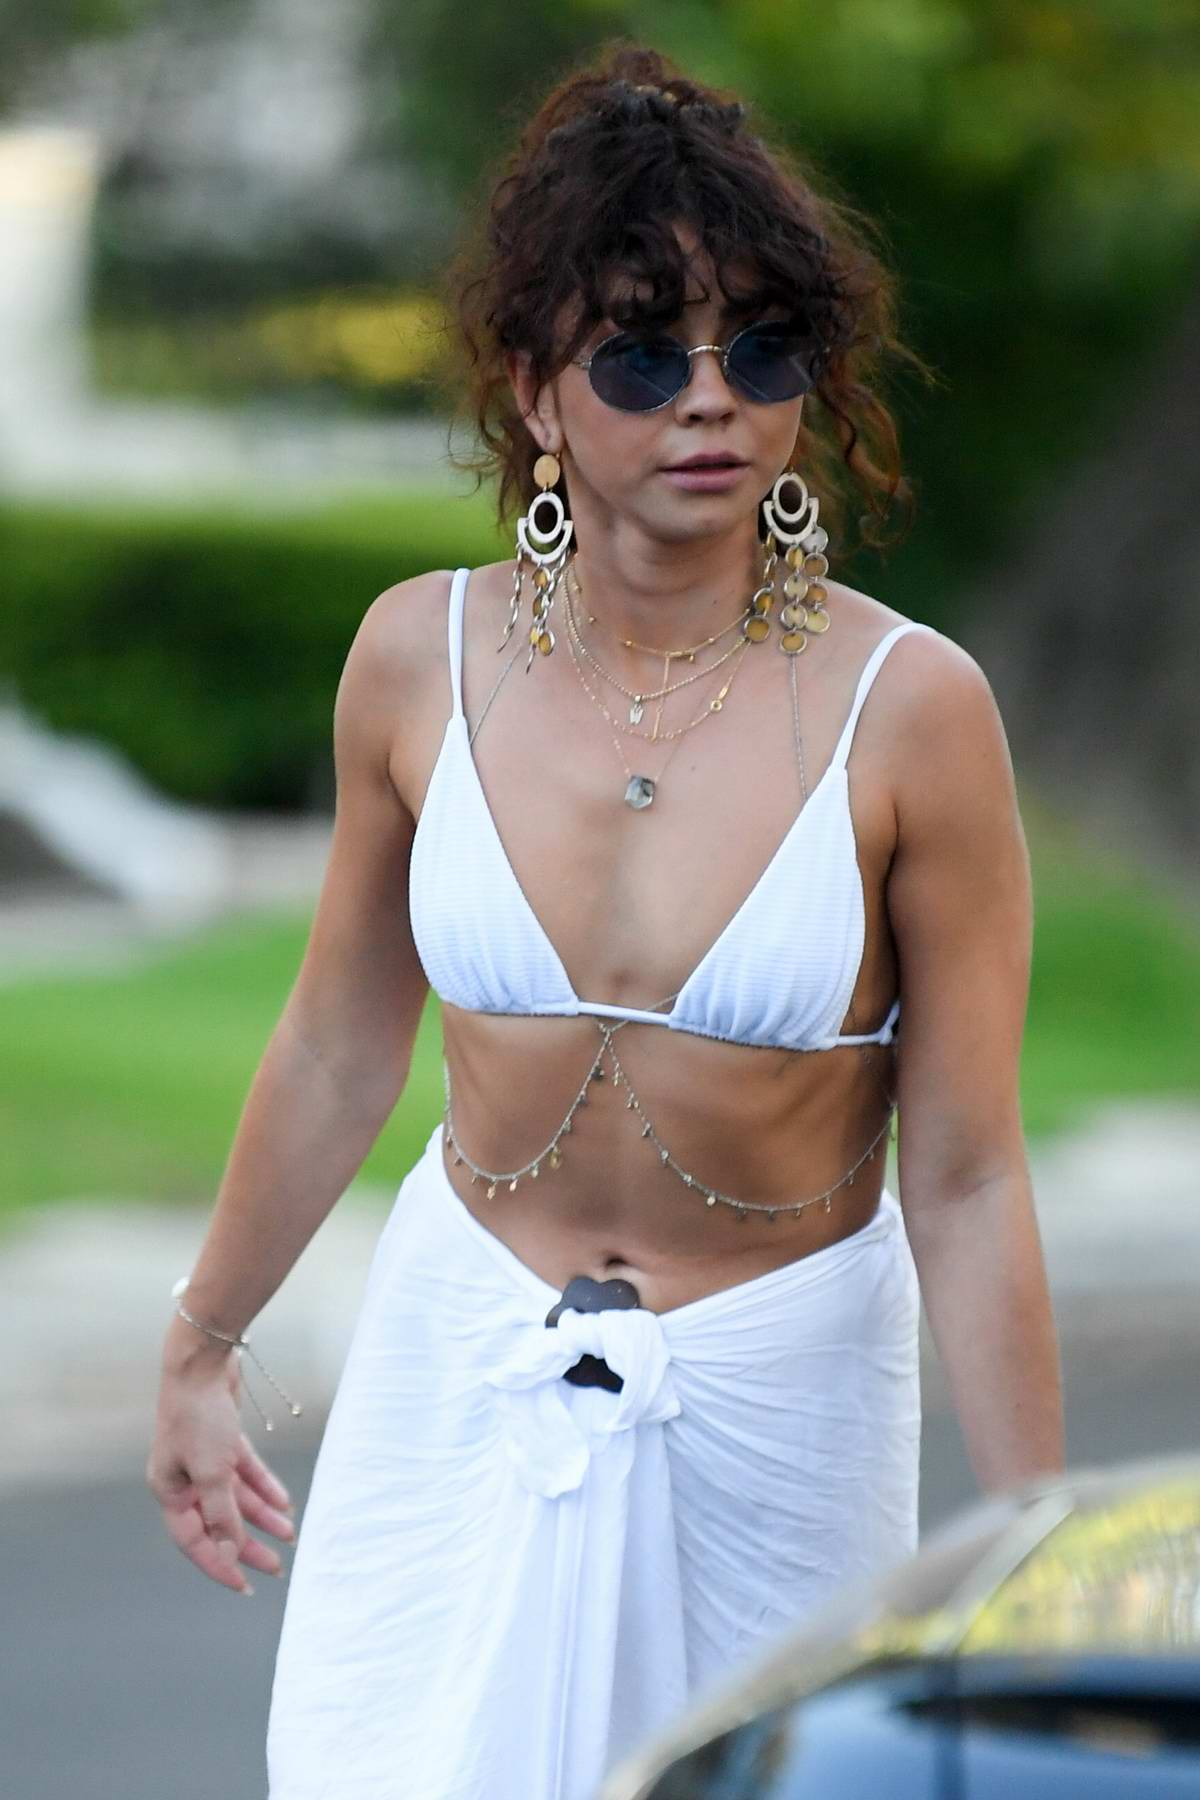 Sarah Hyland spotted in a white bikini top as she leaves a pool party in Los Angeles